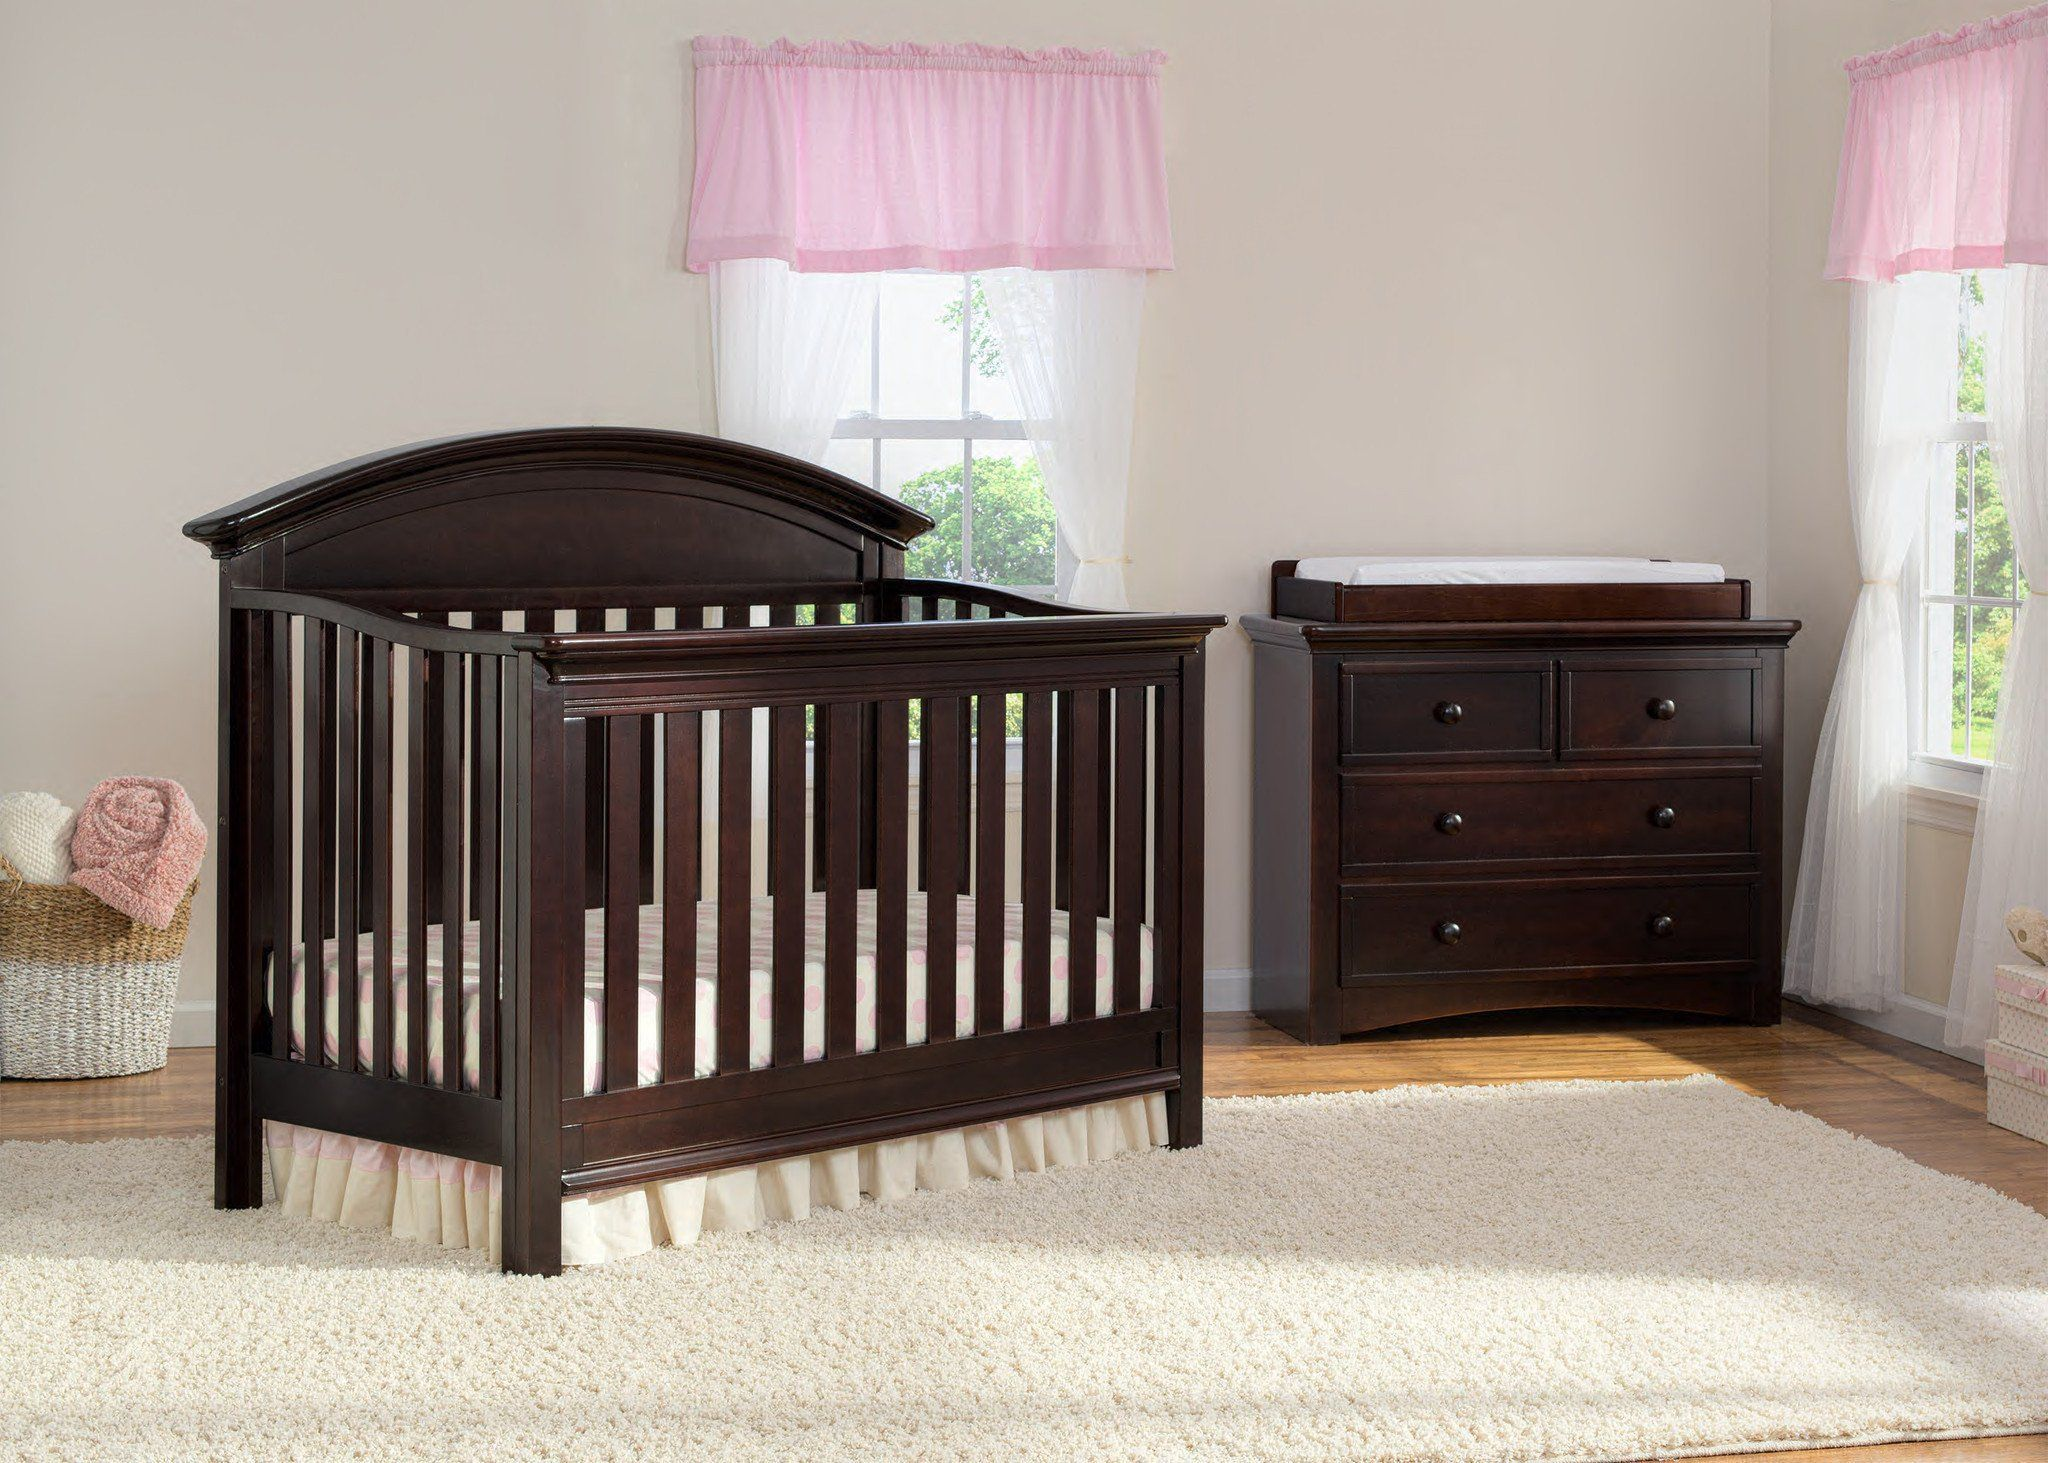 Serta Dark Chocolate (207) Aberdeen 4-in-1 Crib, Crib Conversion in Setting 2 c1c